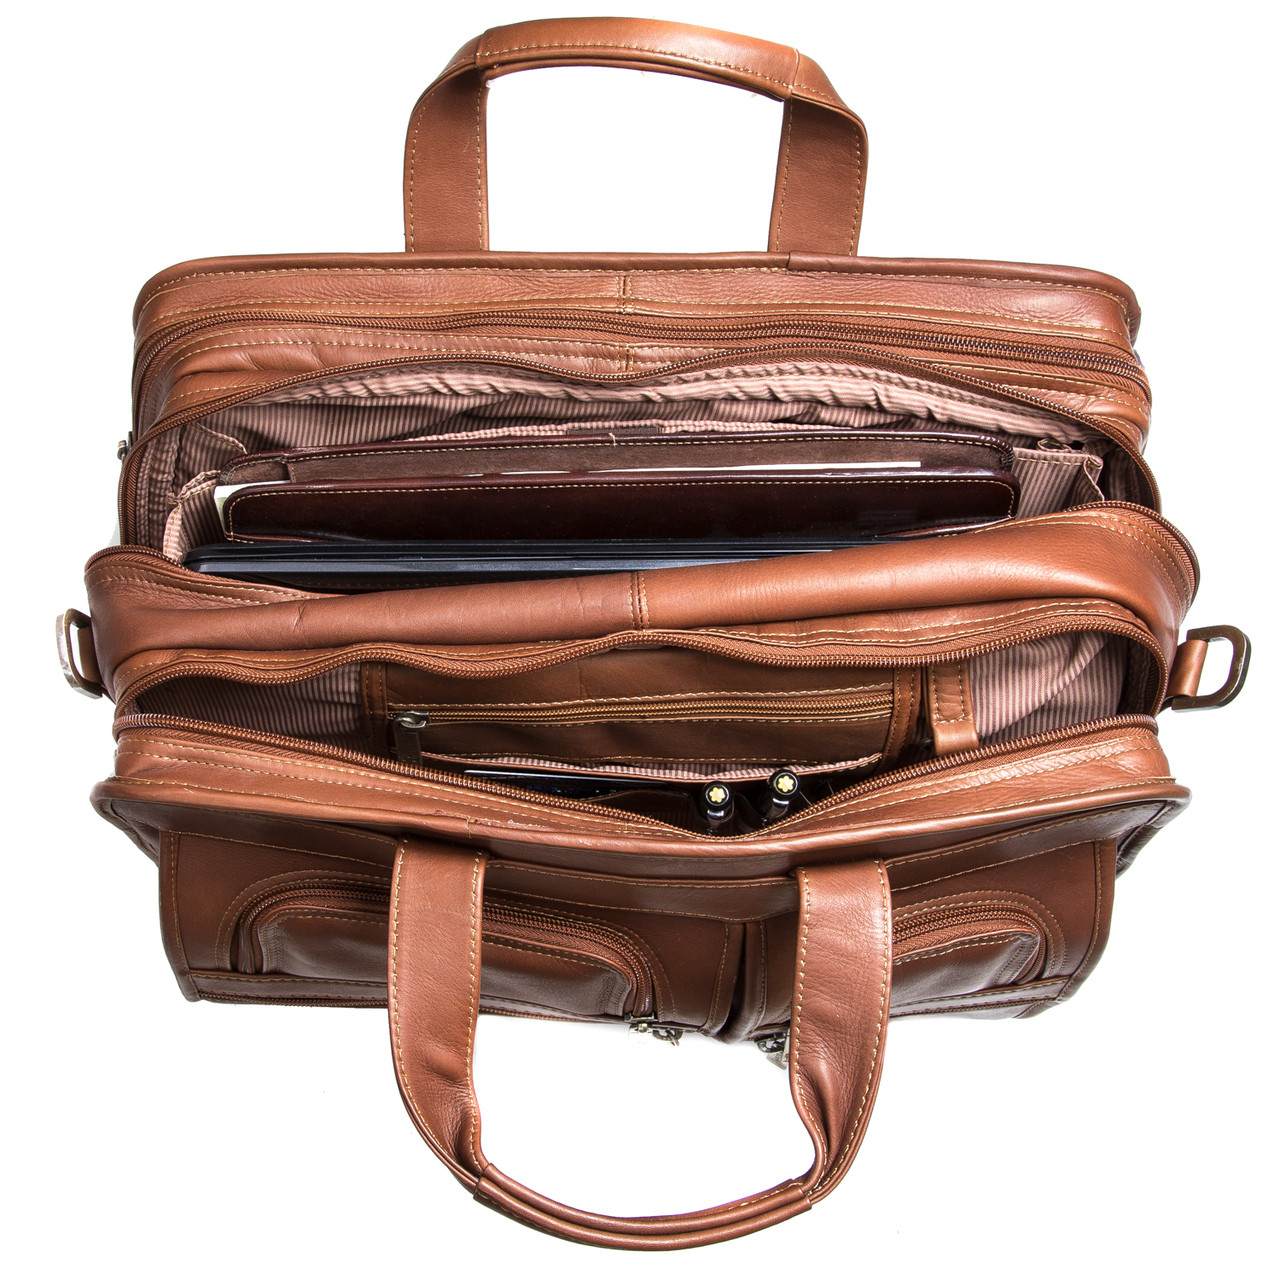 "Muiska - Madrid - 17"" Laptop Case is versatile enough to adapt to any work situation"